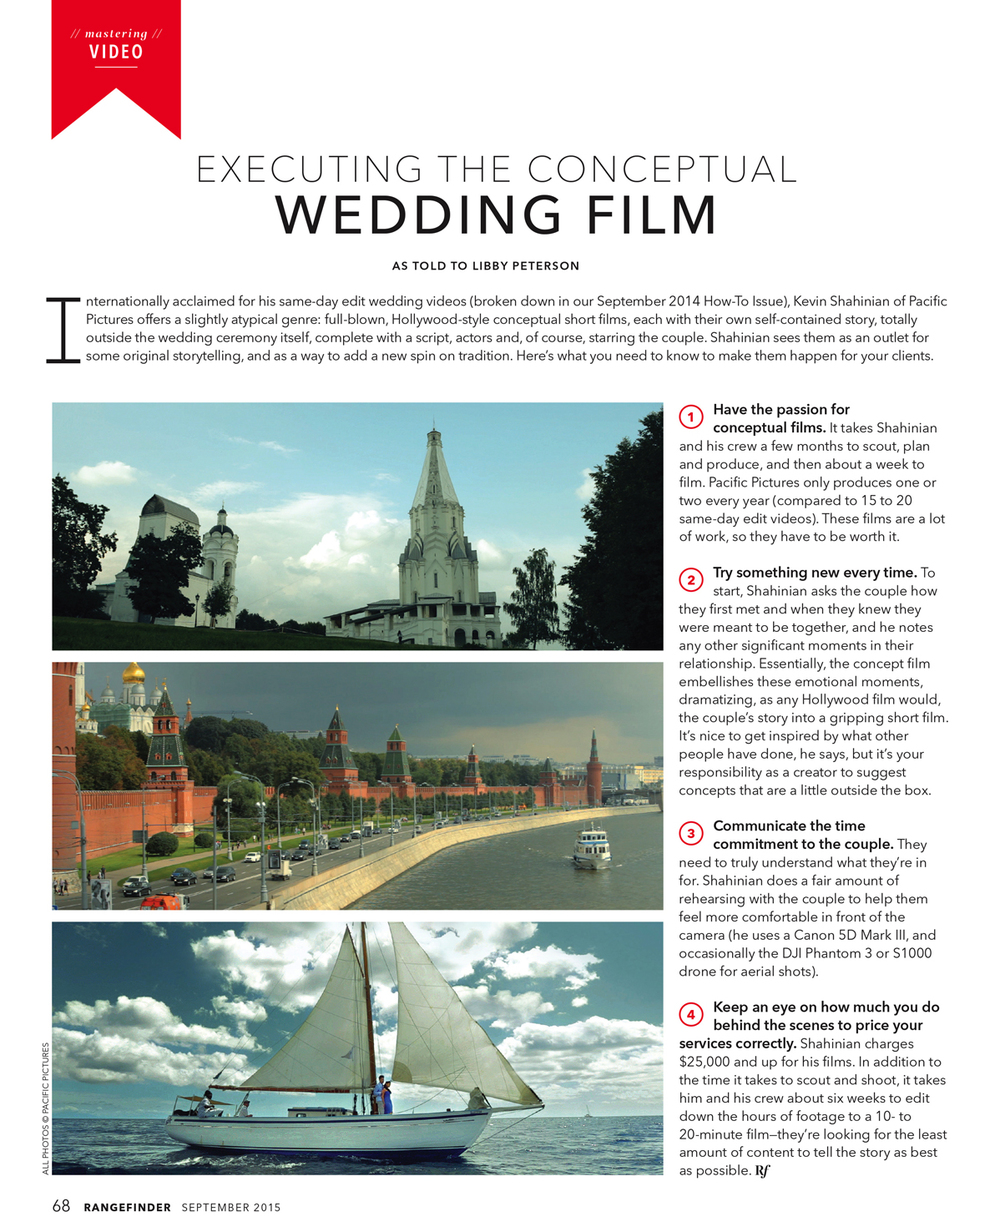 EXECUTING THE CONCEPTUAL WEDDING FILM